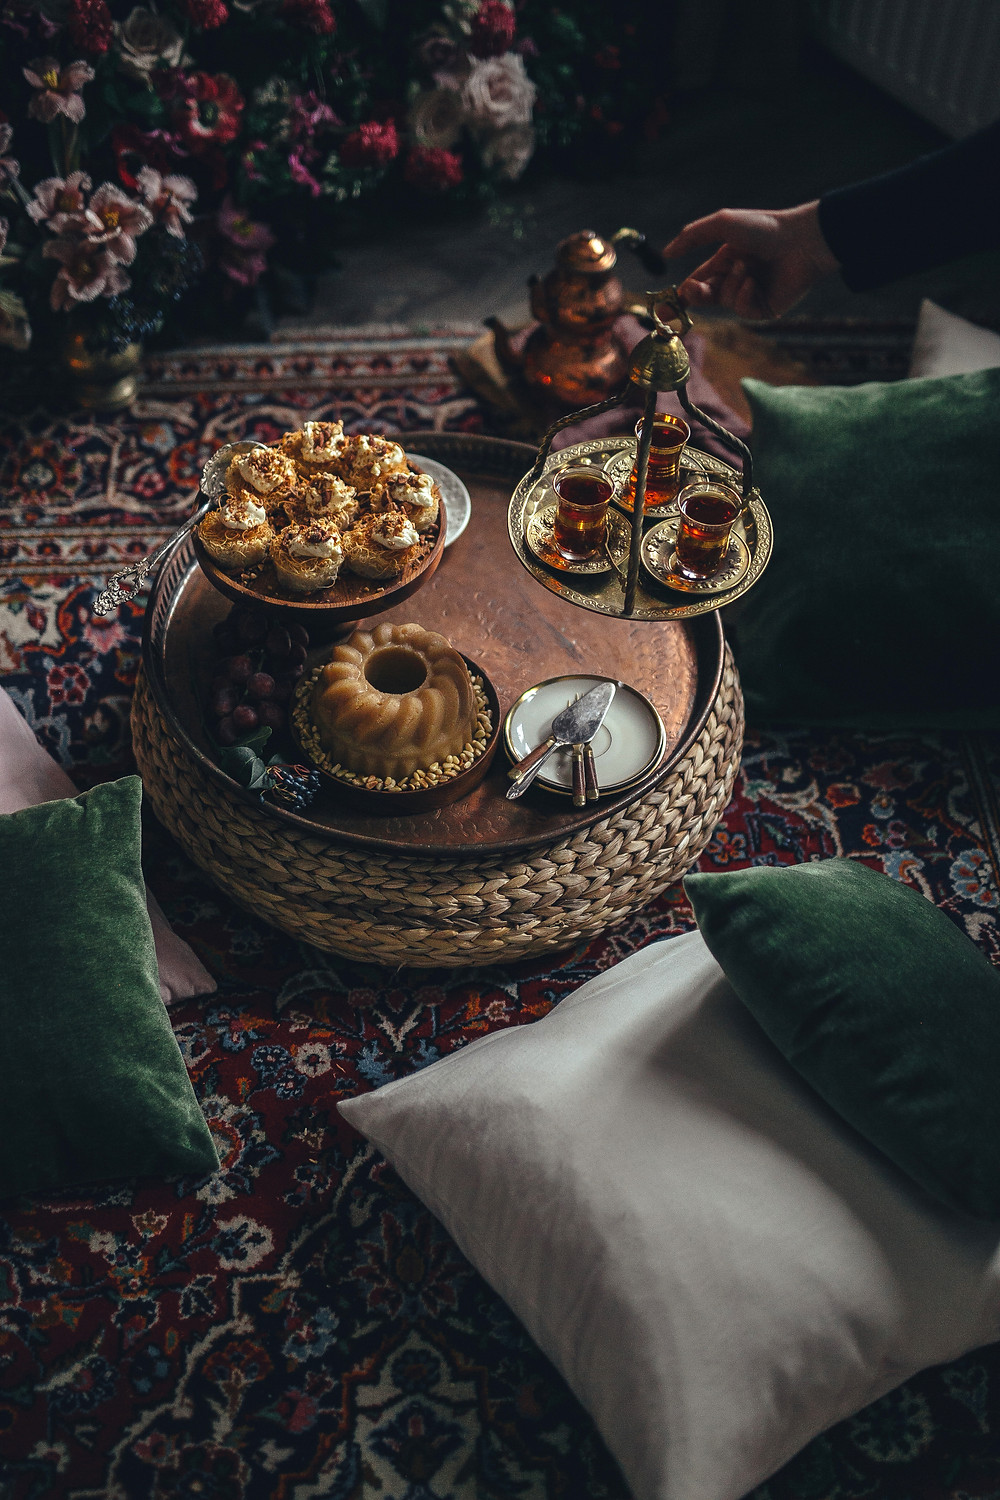 turkish tea and desserts